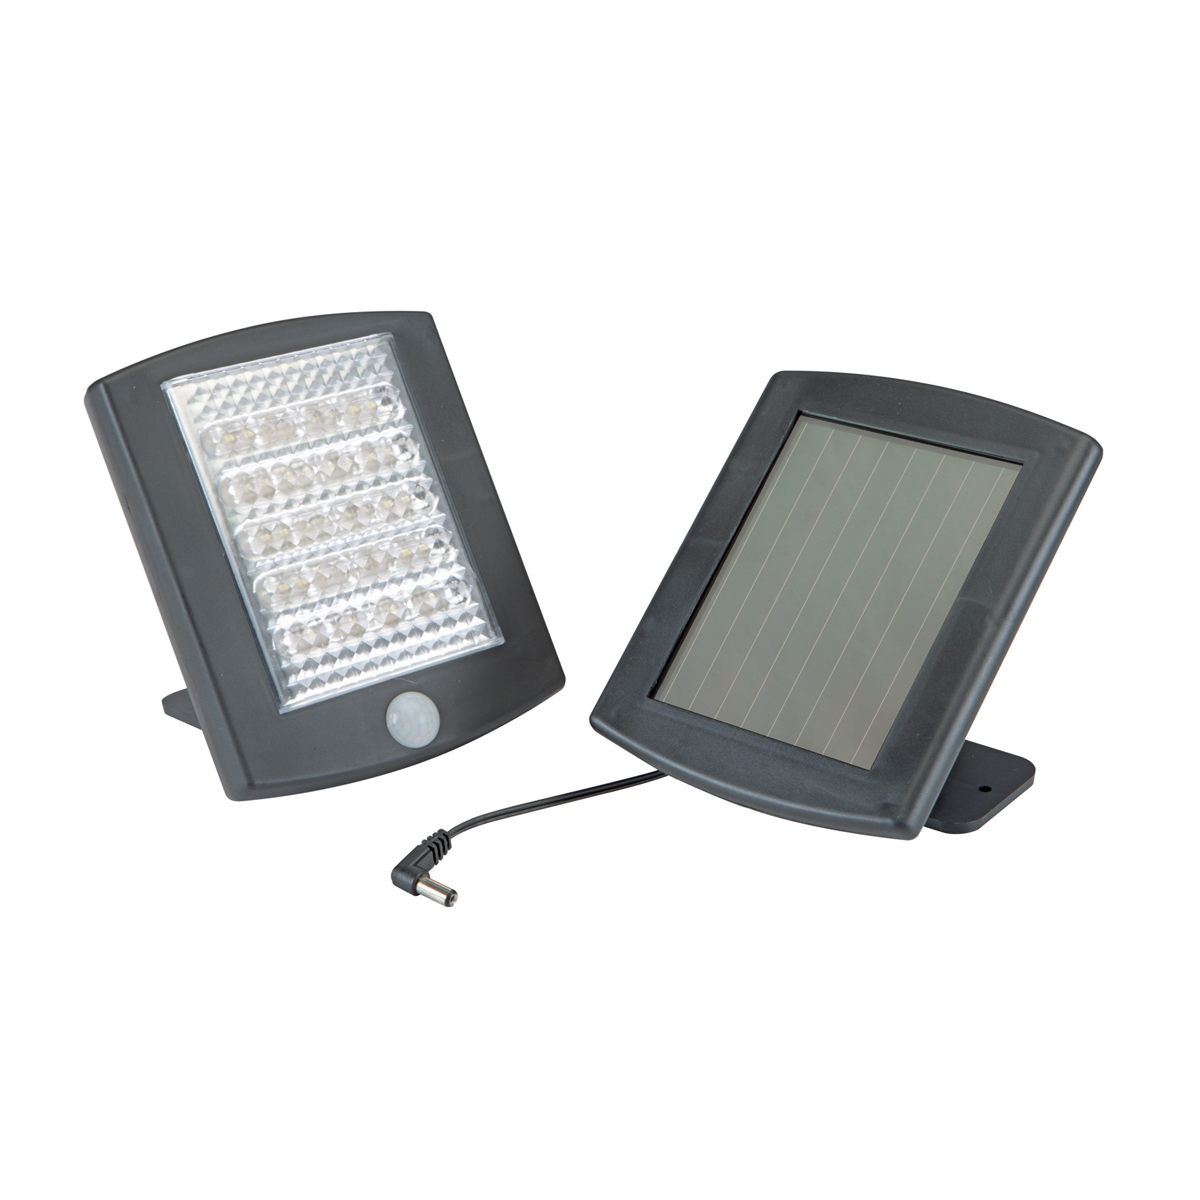 Patio Lights Harbor Freight: Save On This 36 LED Security Light